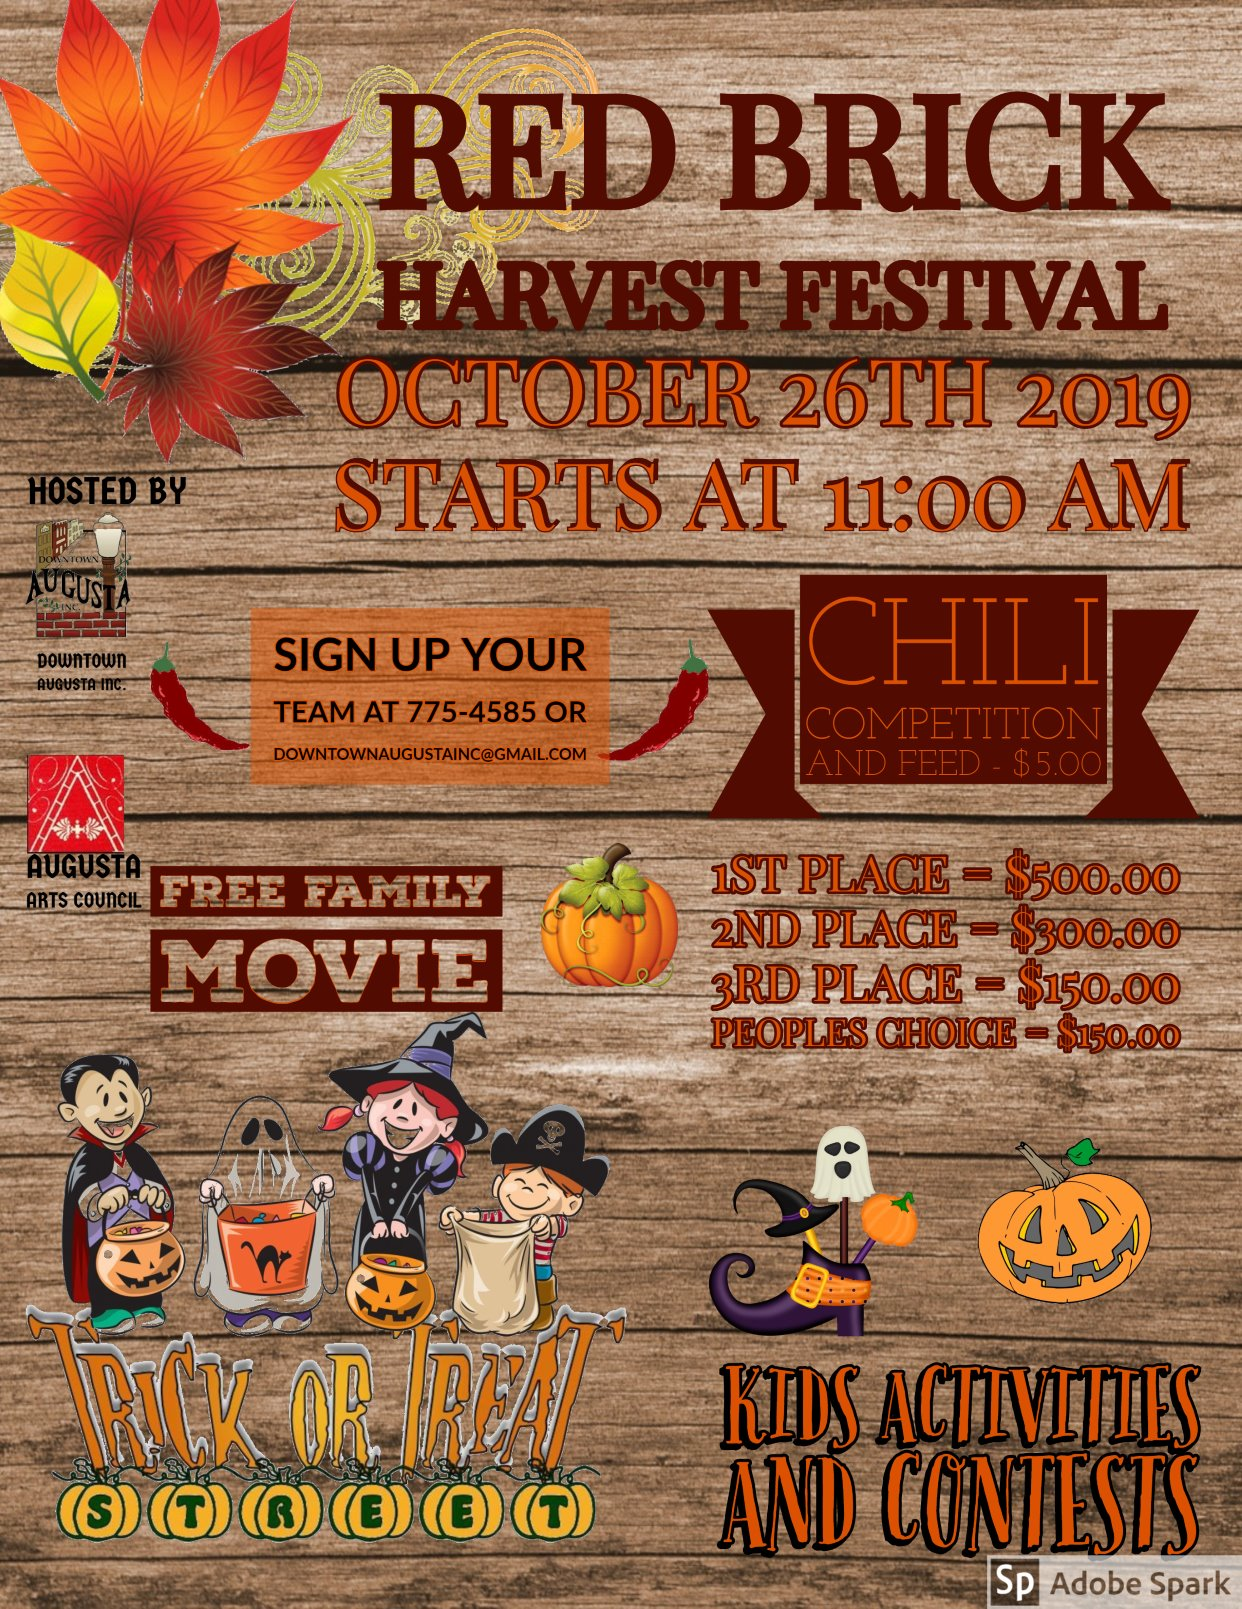 Red Brick Harvest Festival